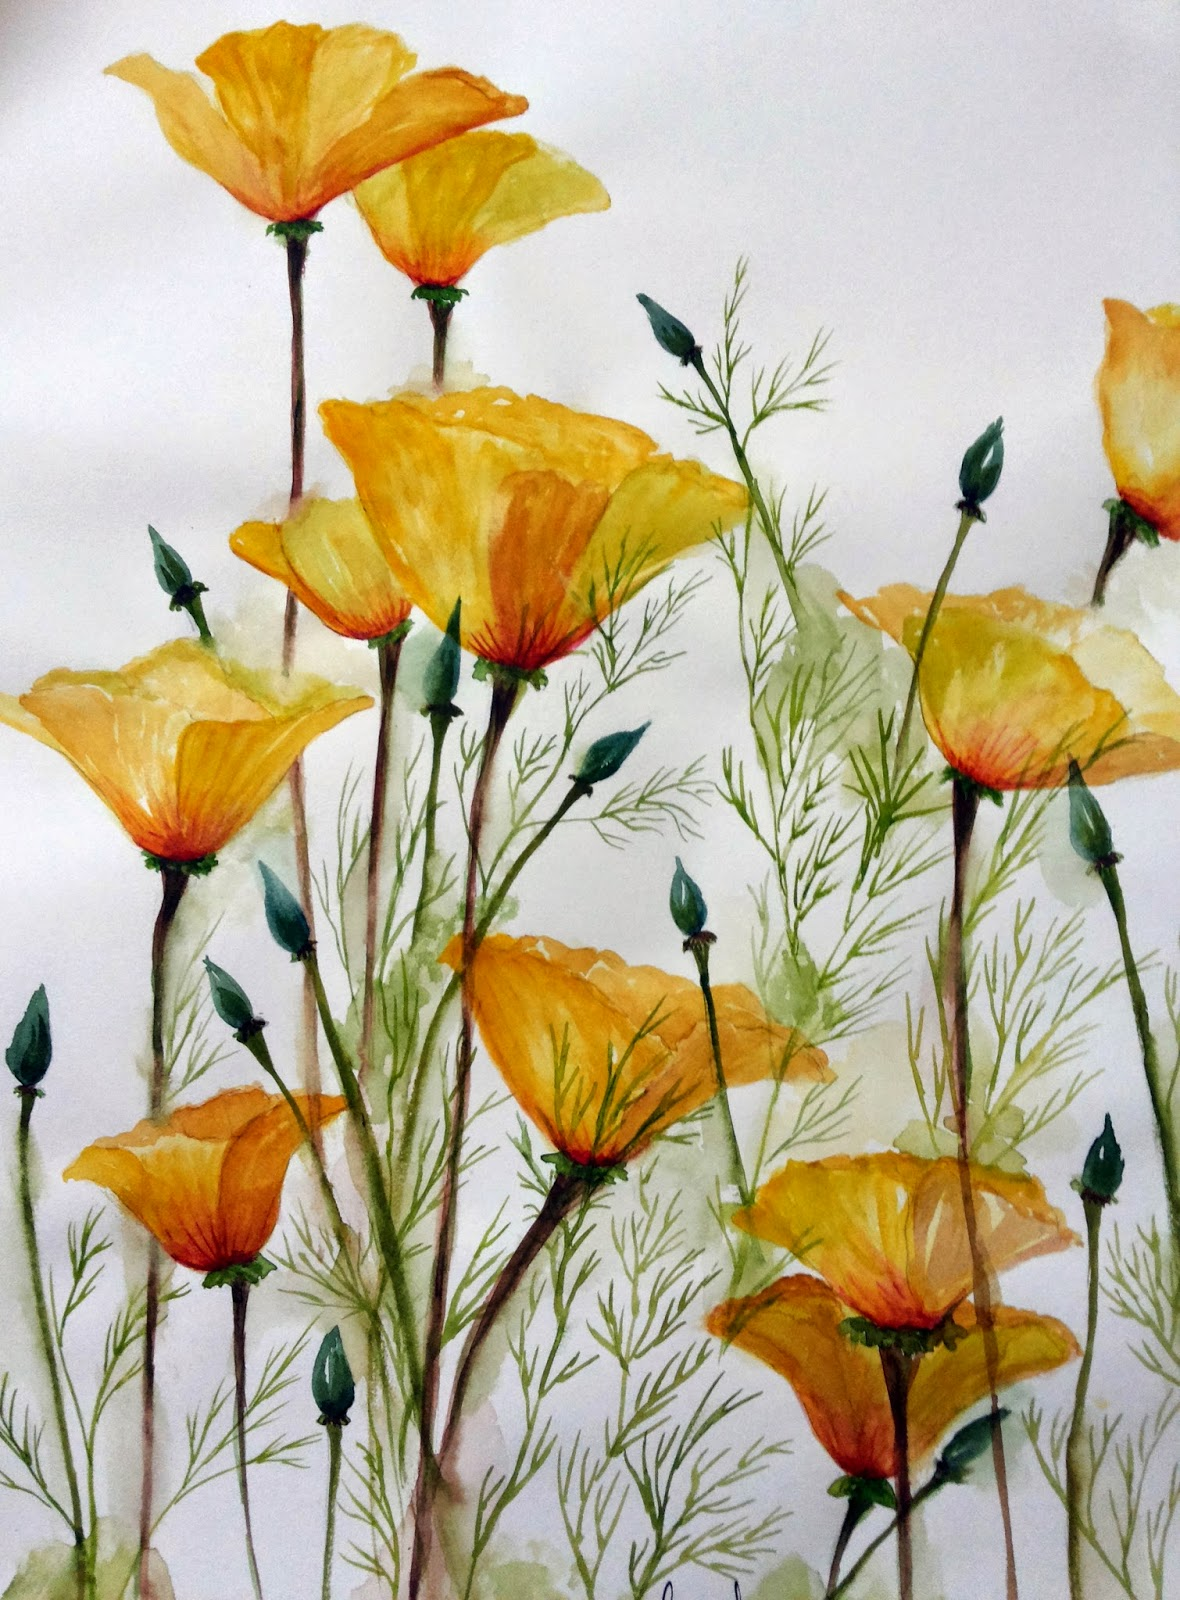 #yellow #poppy #flowers #shoots #painting #watercolor #blooming #garden